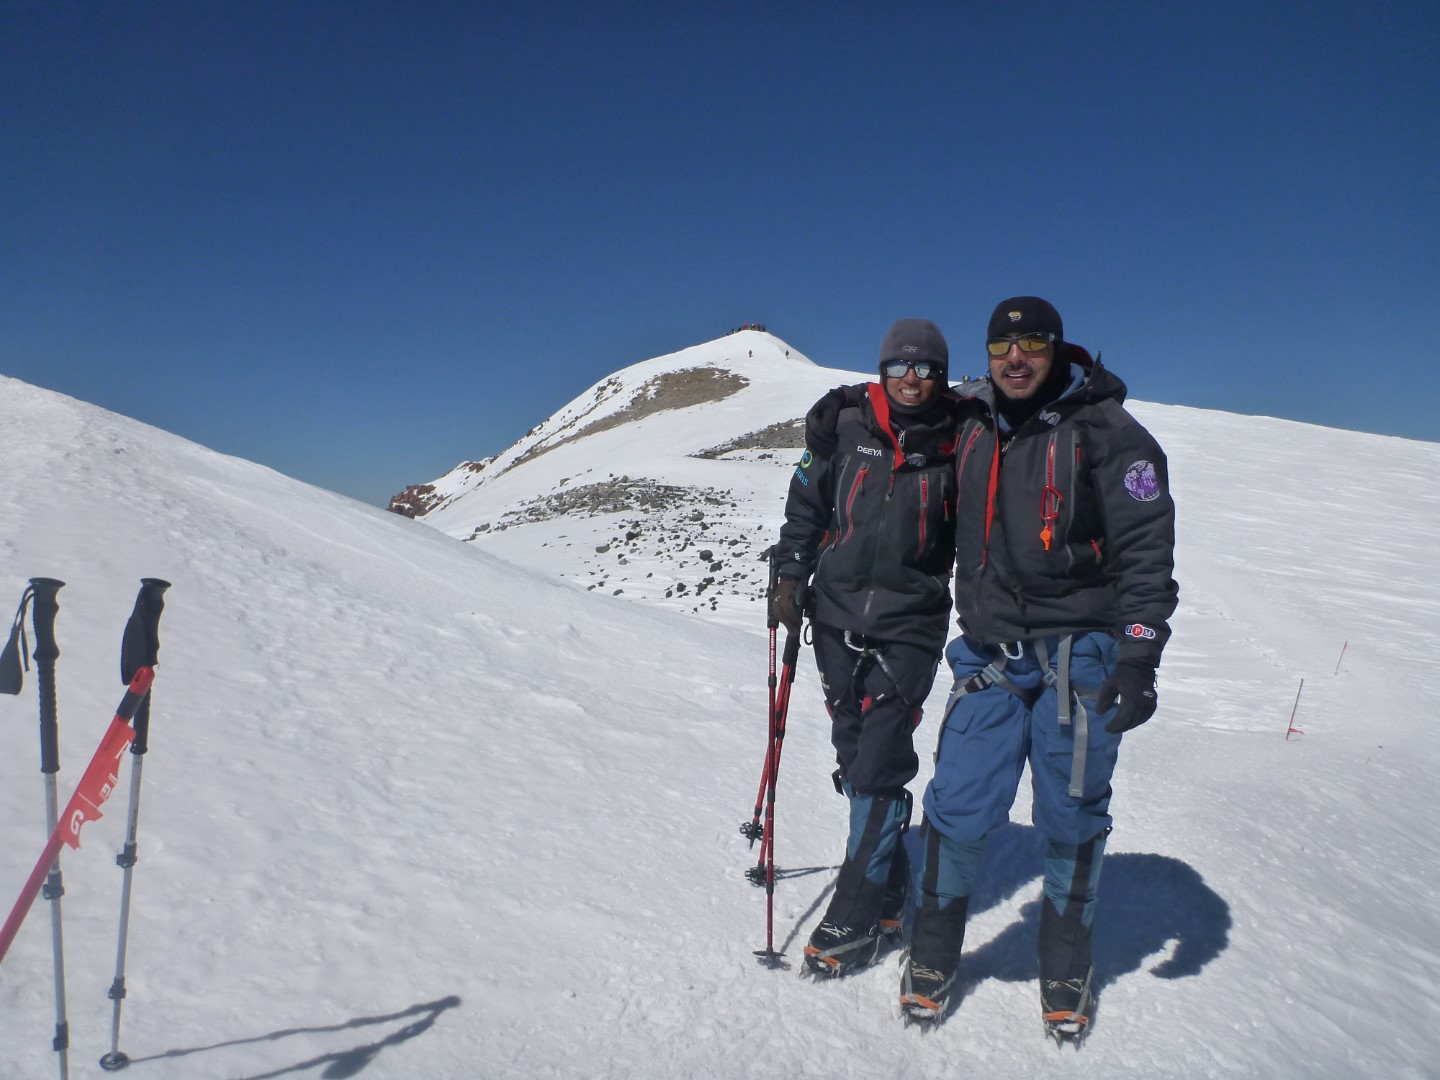 Ajeet and Deeya Bajaj at Mt Elbrus in Russia.